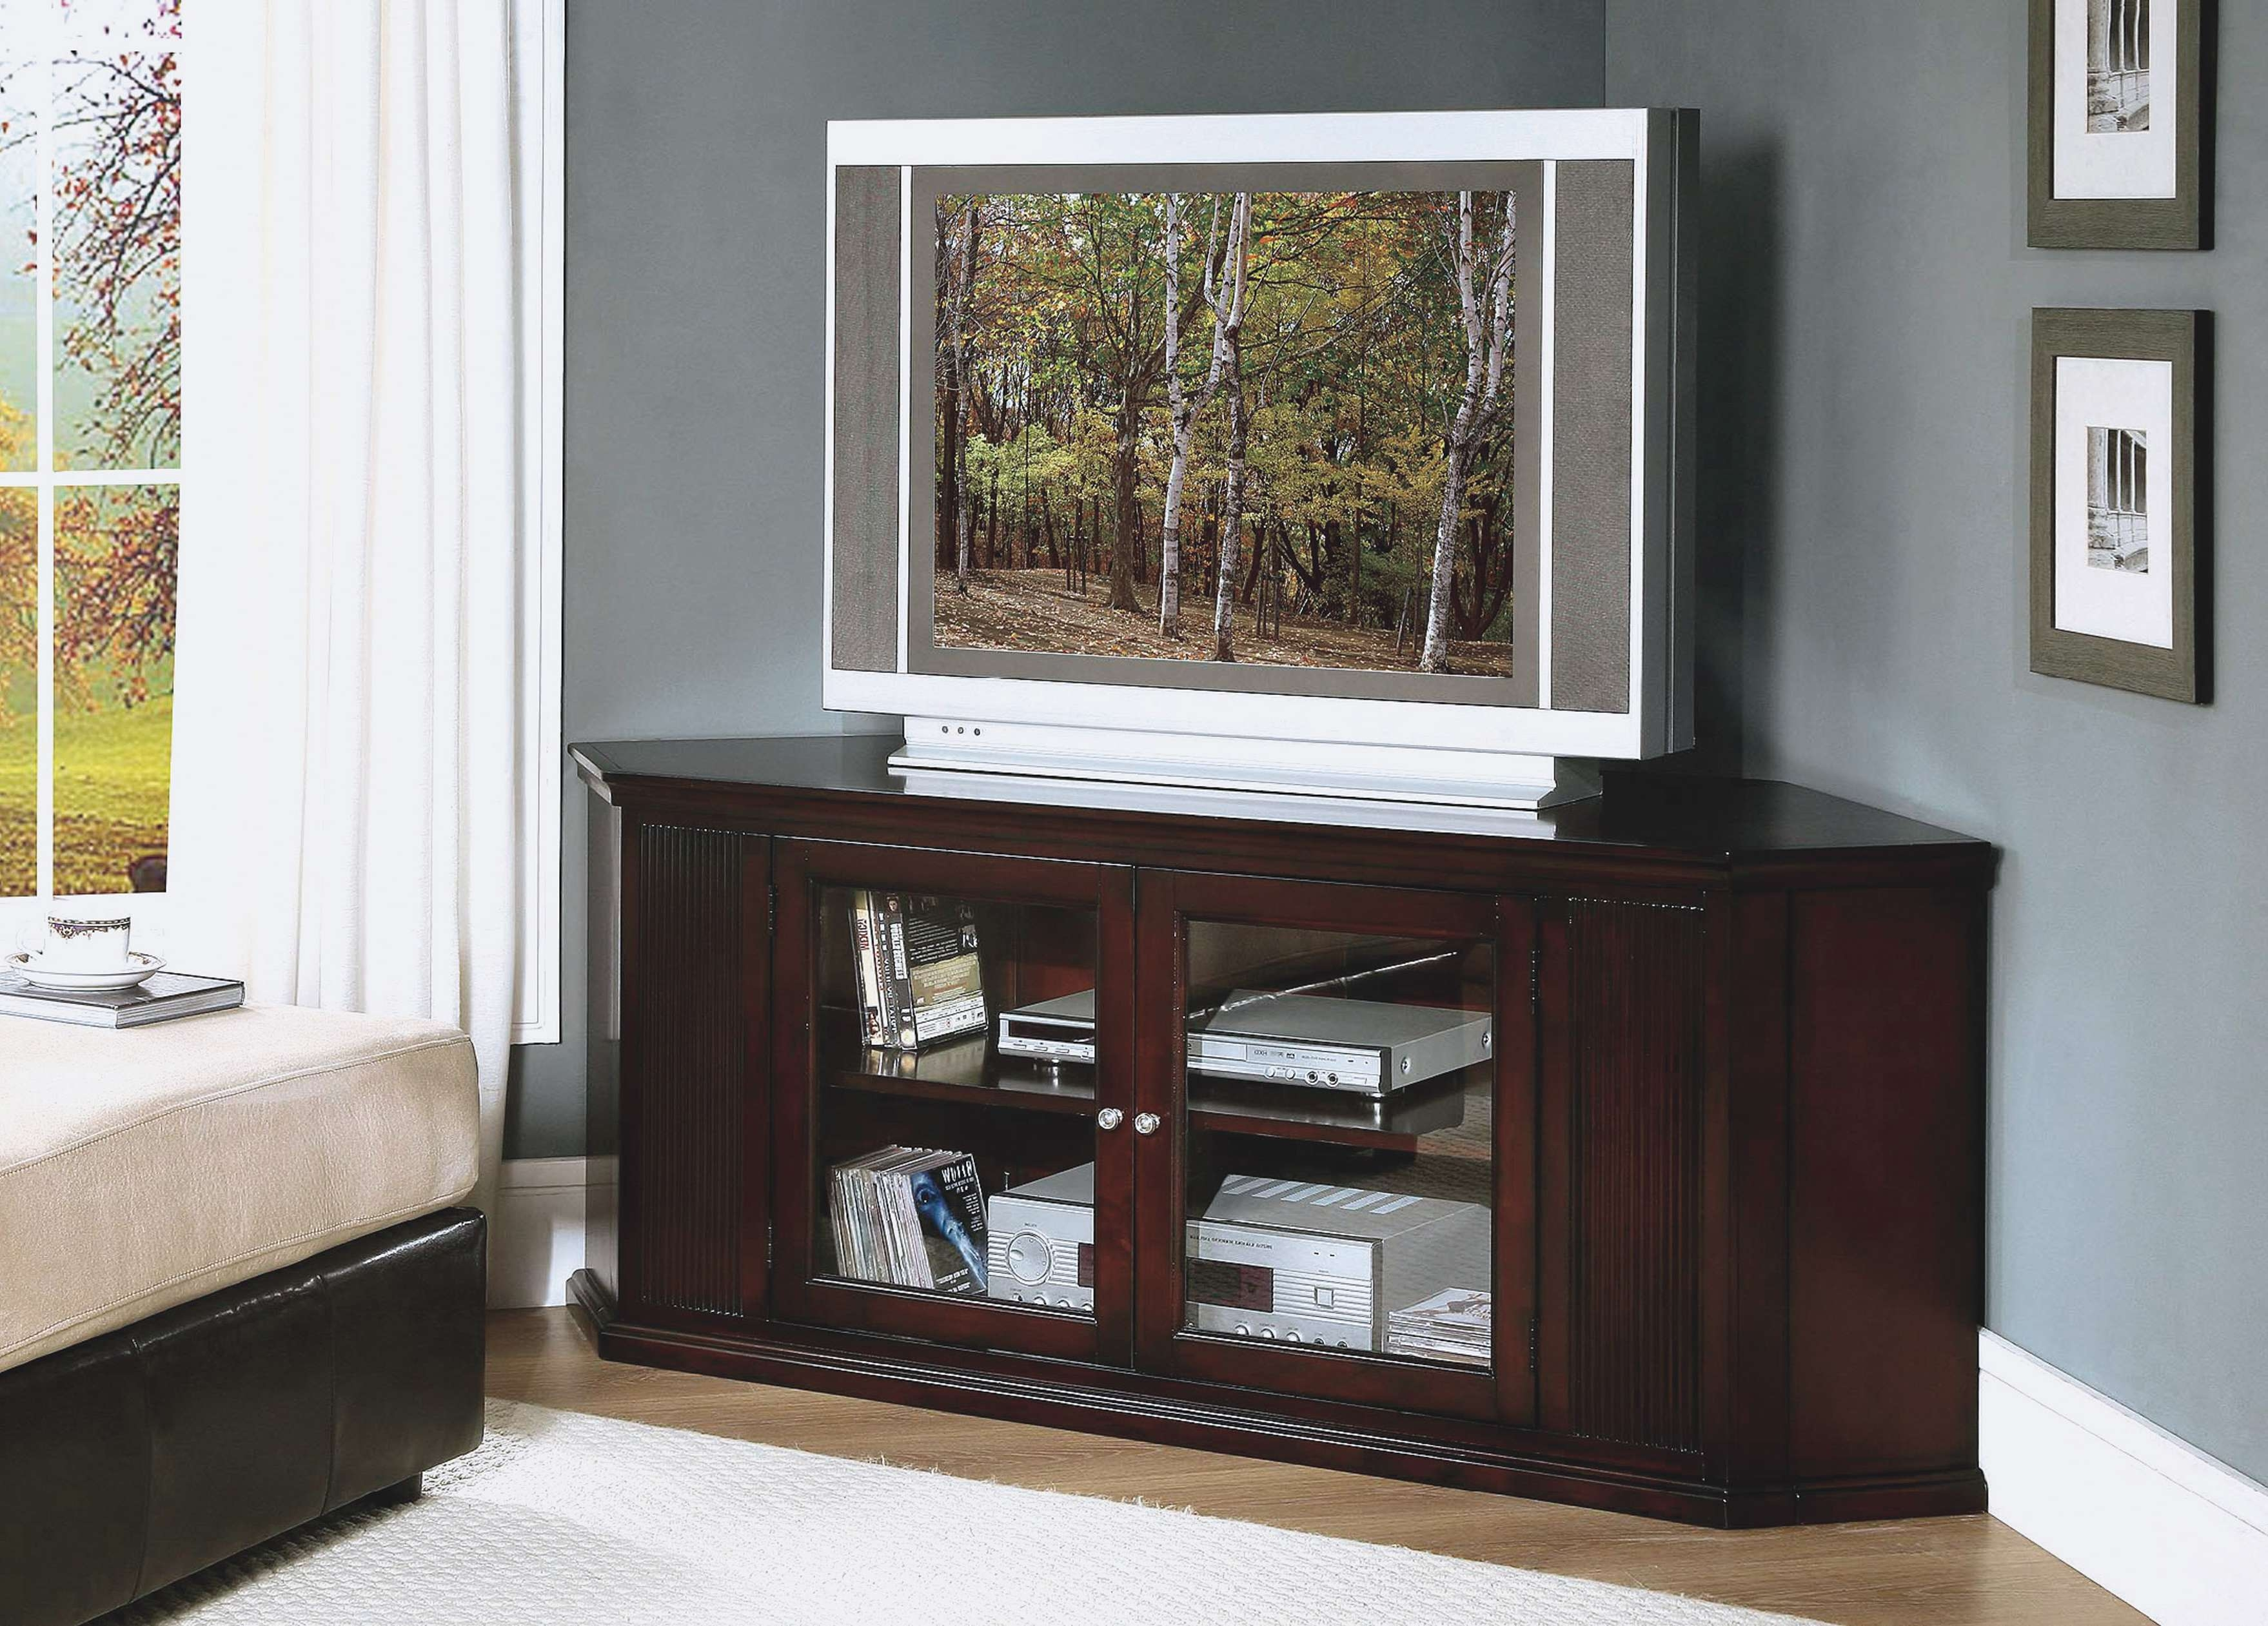 Appealing Chocolate Solid Wood Corner Tv Stand Microfiber Ottoman Inside Solid Wood Corner Tv Stands (View 2 of 20)